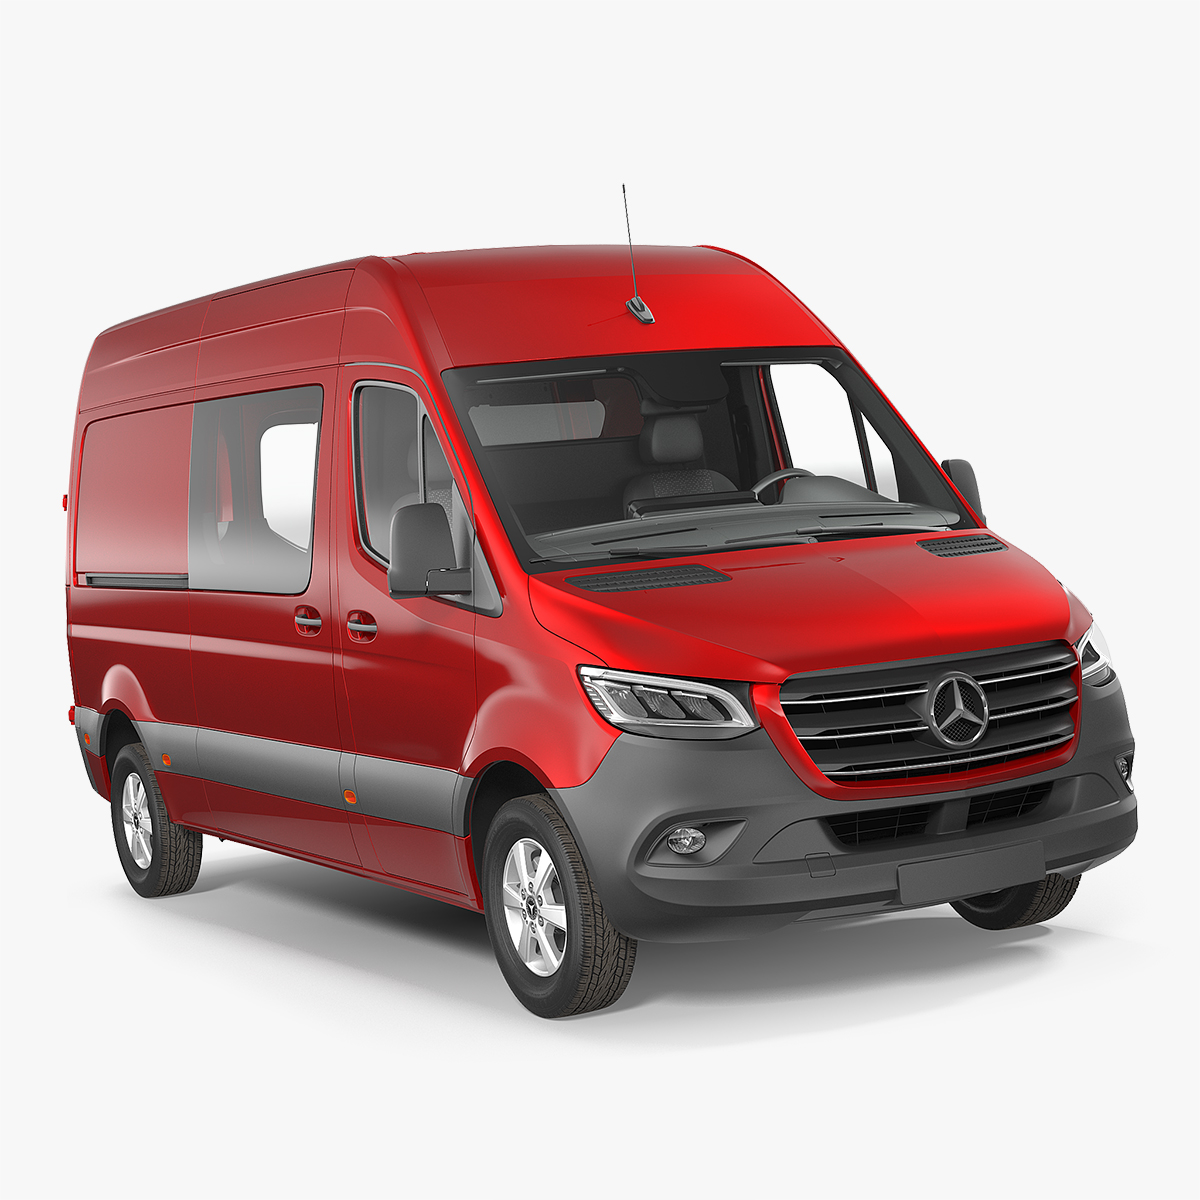 mercedes sprinter van 2019 3D model